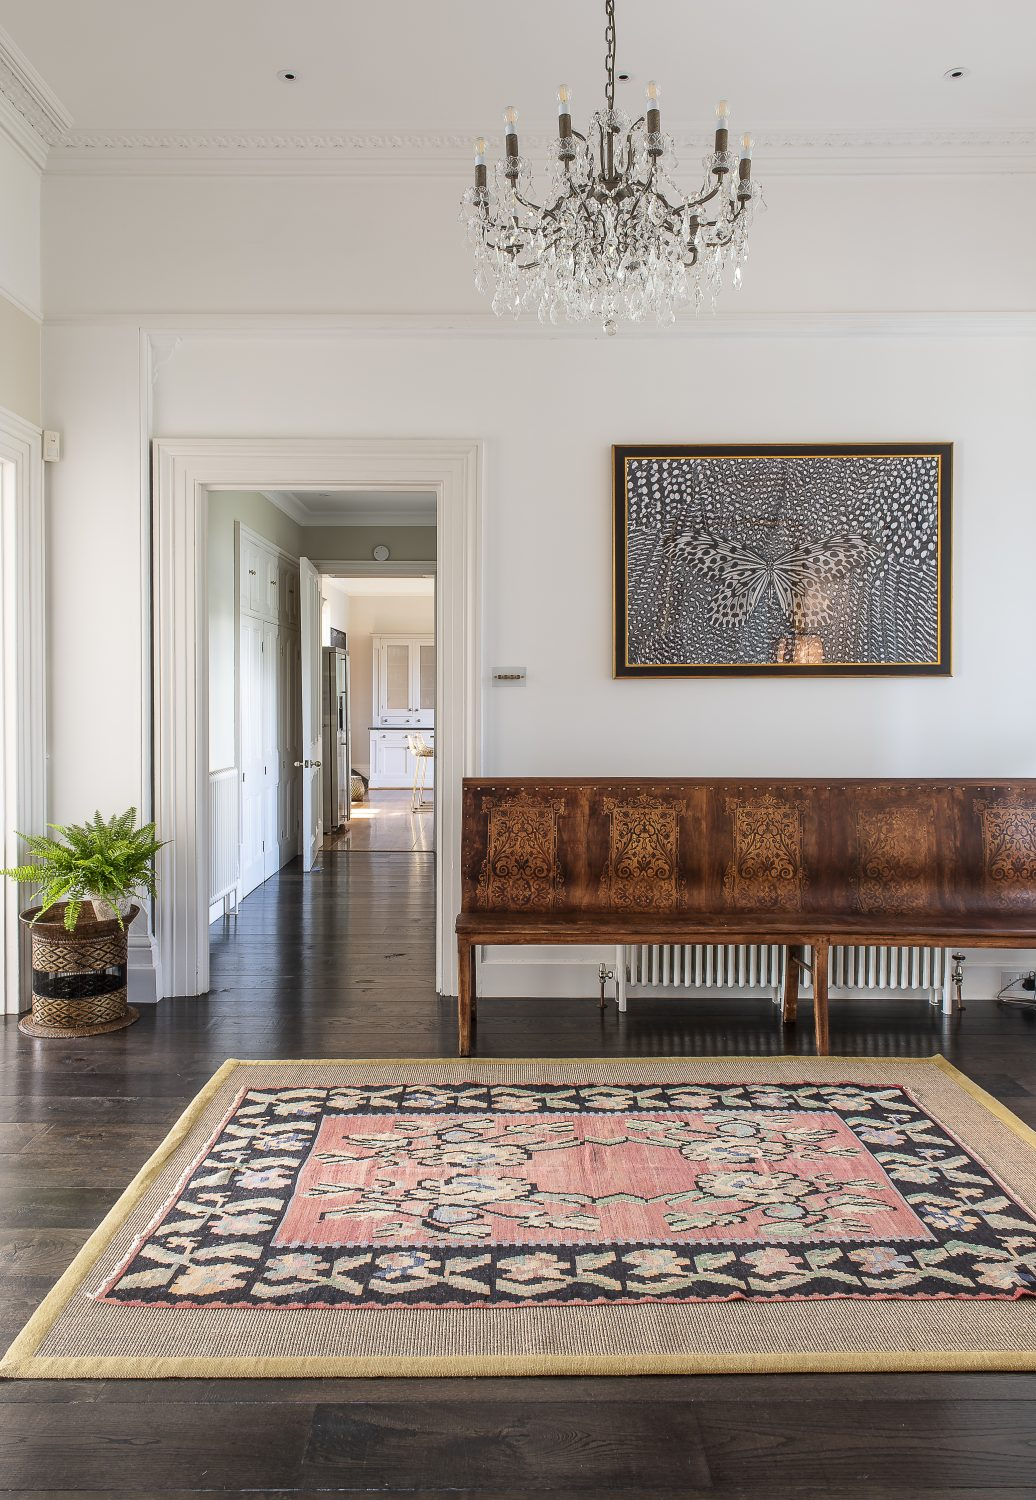 Olya has kept the walls in the entrance hall neutral and the floors stained dark, which has allowed the geometric patterns of the Sahara Tuareg reed and leather rug, as well as the pieces of antique furniture and paintings, to shine